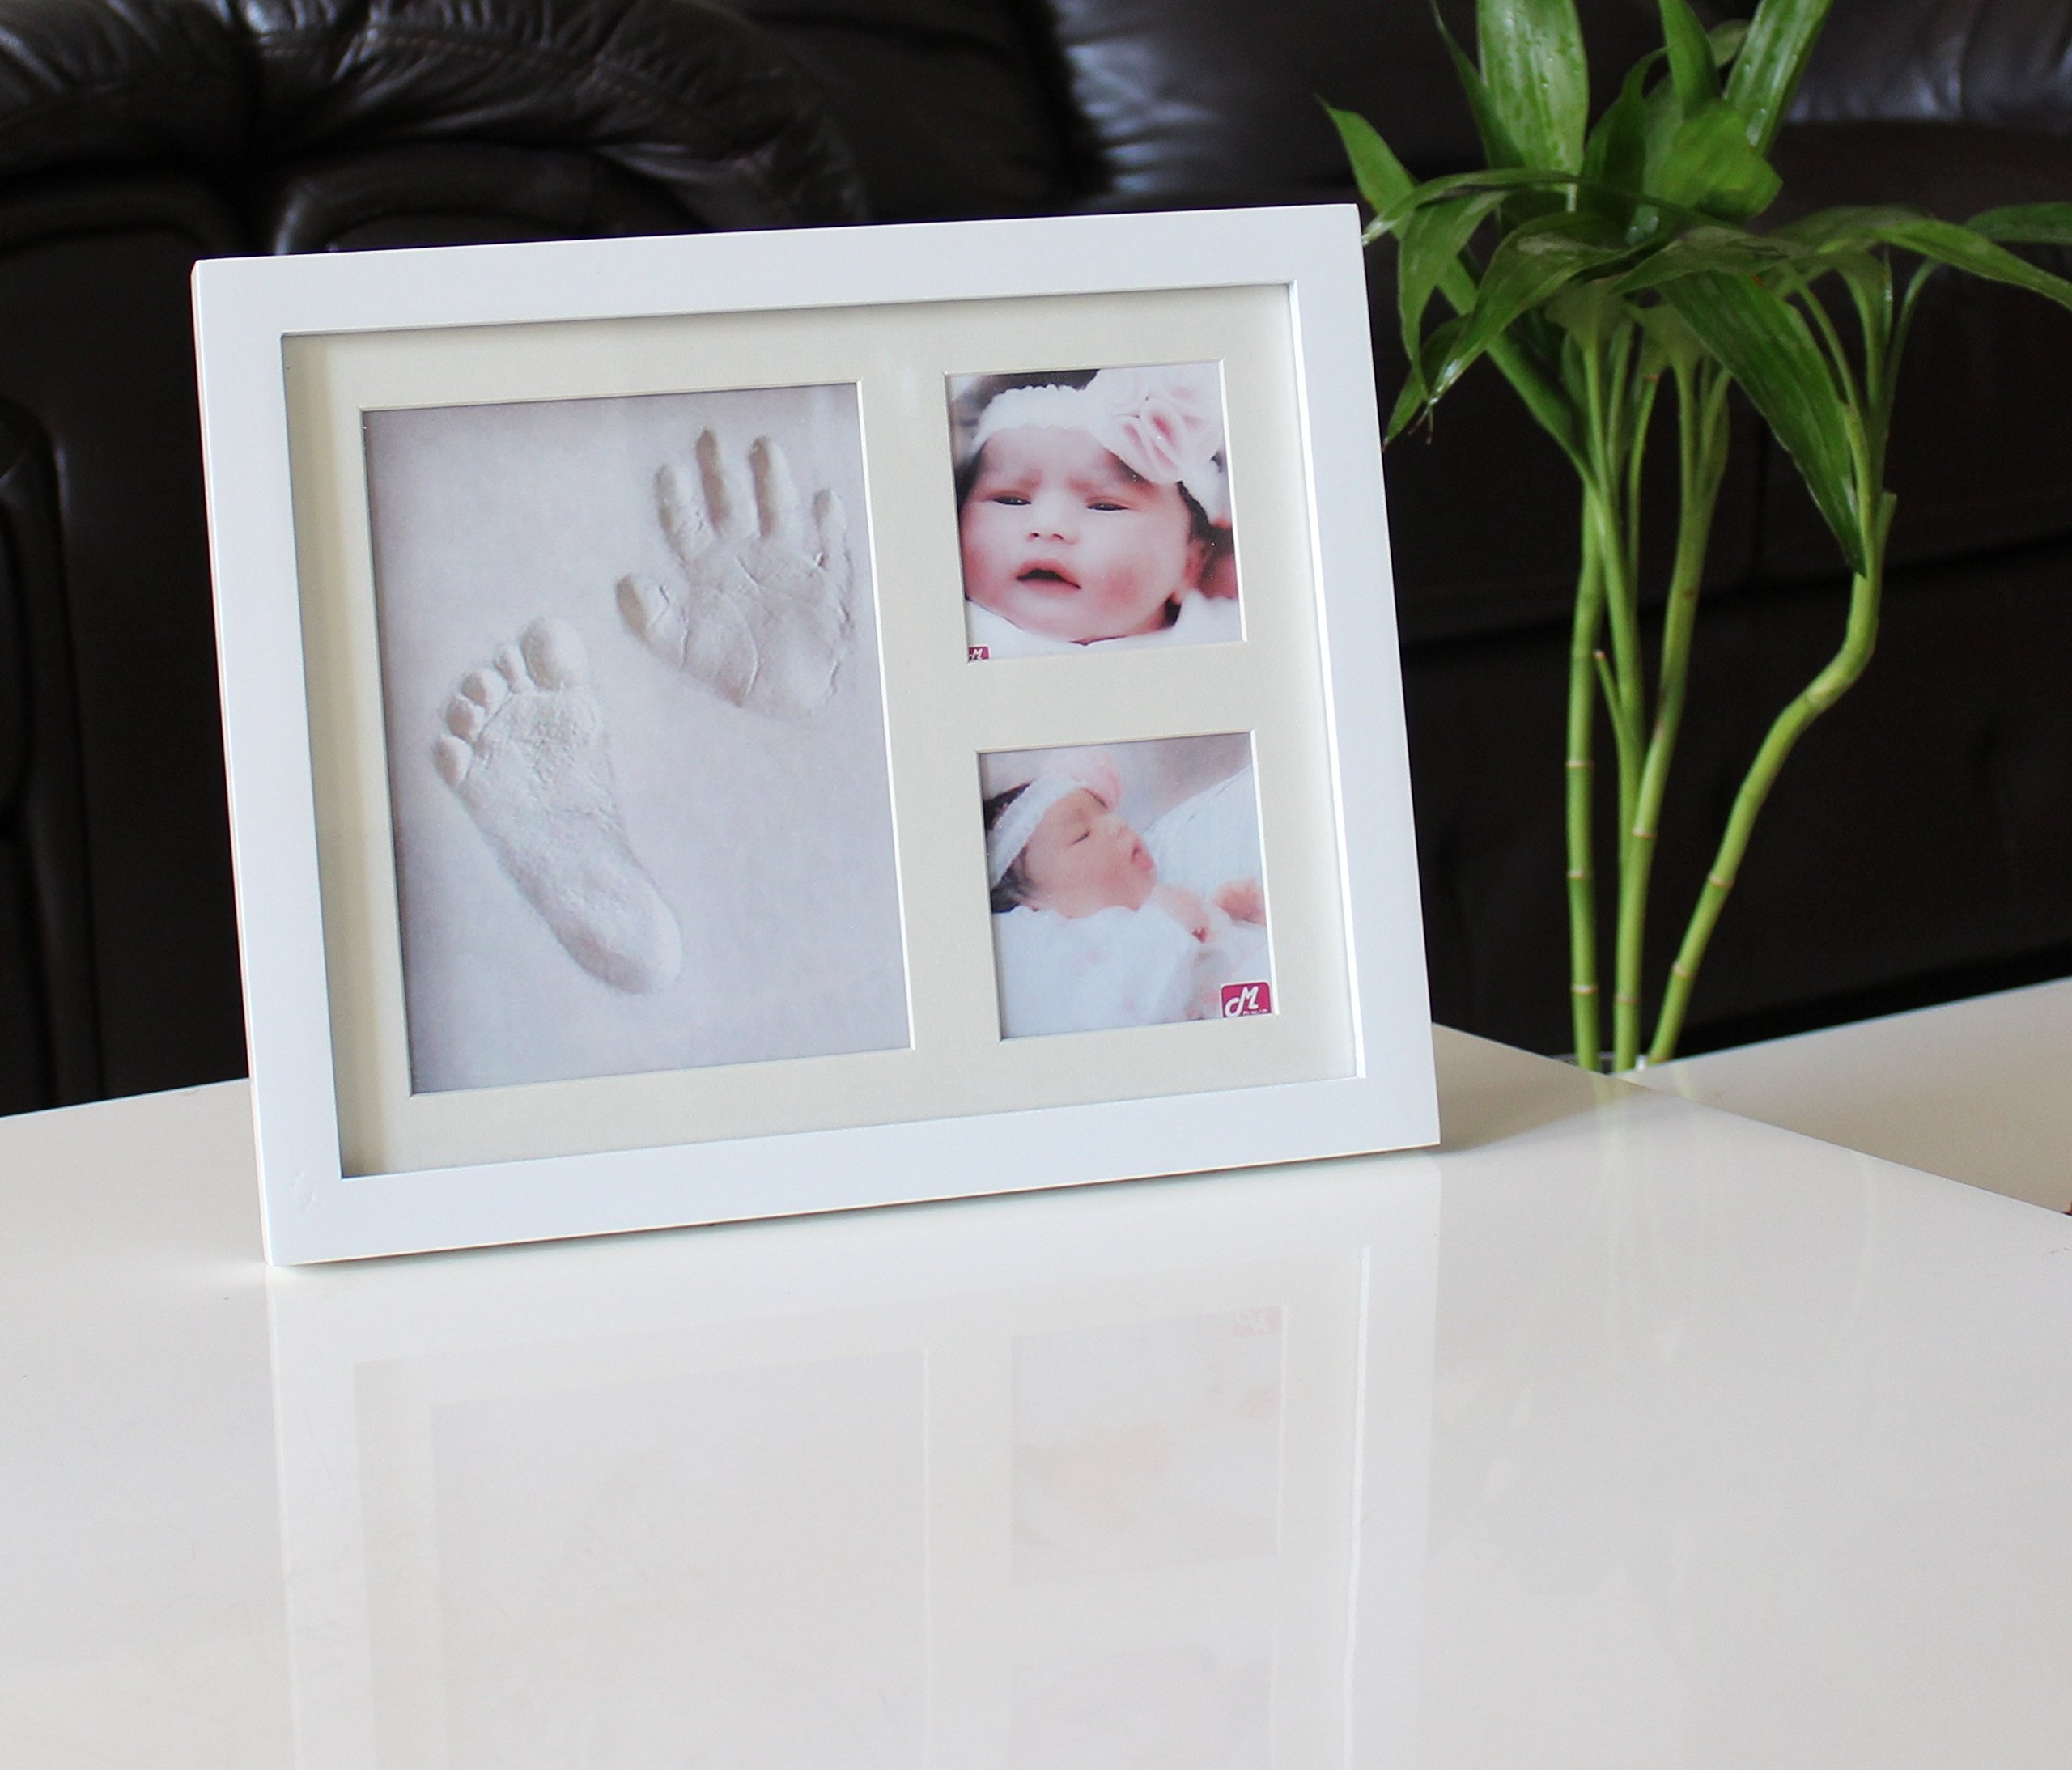 DiMOD Baby Handprint & Footprint Photo Frame Kit for Boys and Girls Baby gifts for room and wall decorations by DiMOD (Image #1)